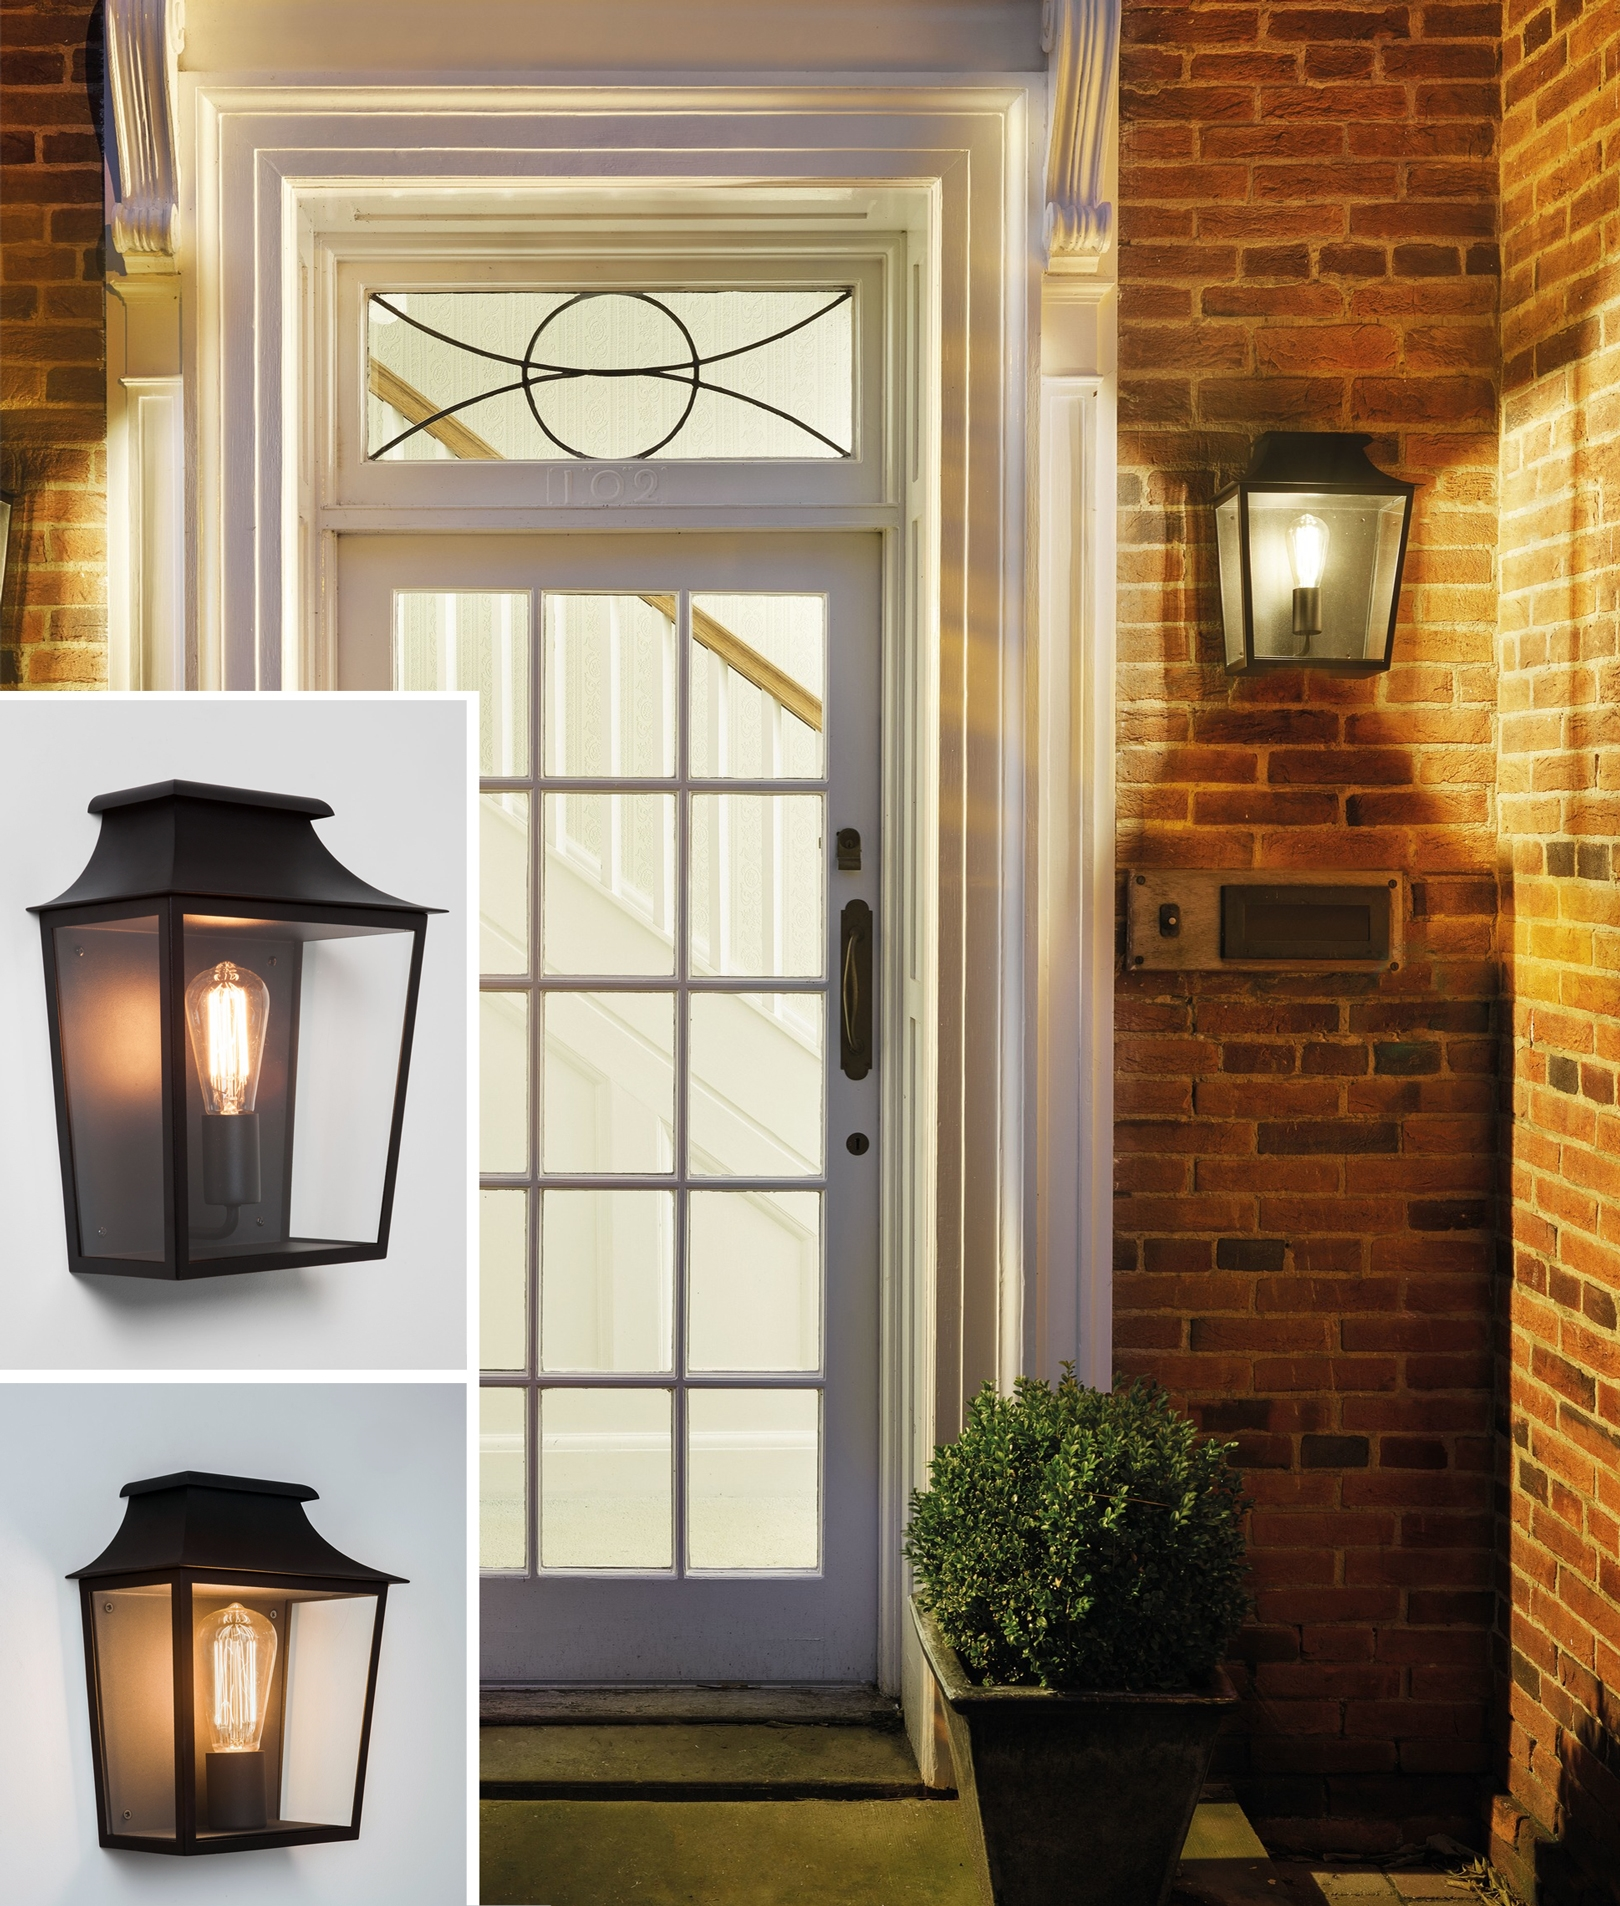 Exterior Traditional Wall Light